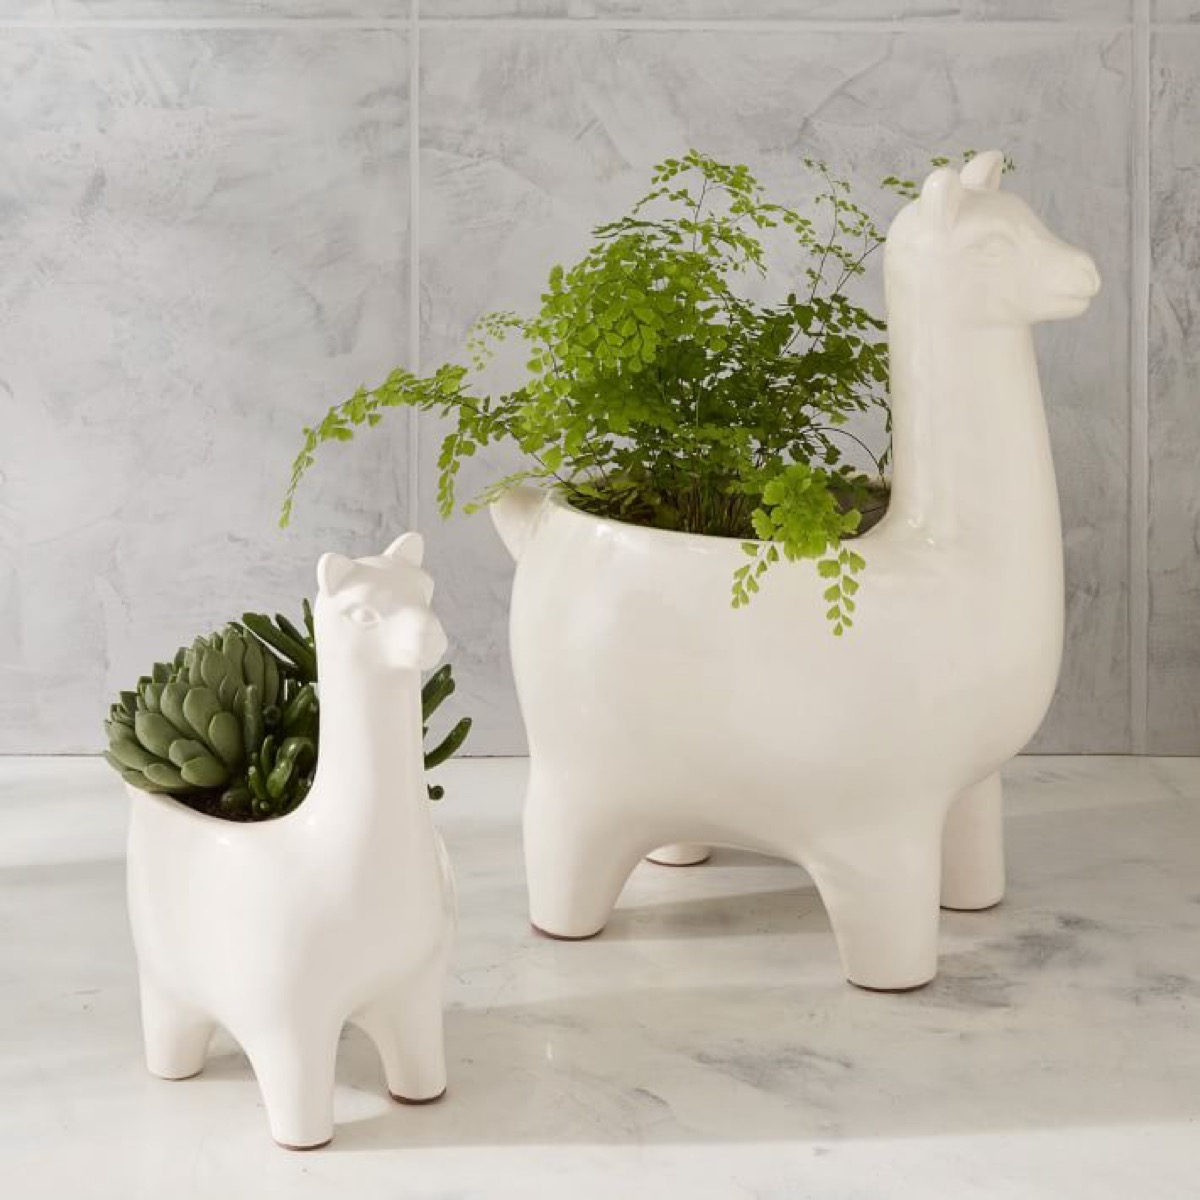 Two sizes of llama planters with plants